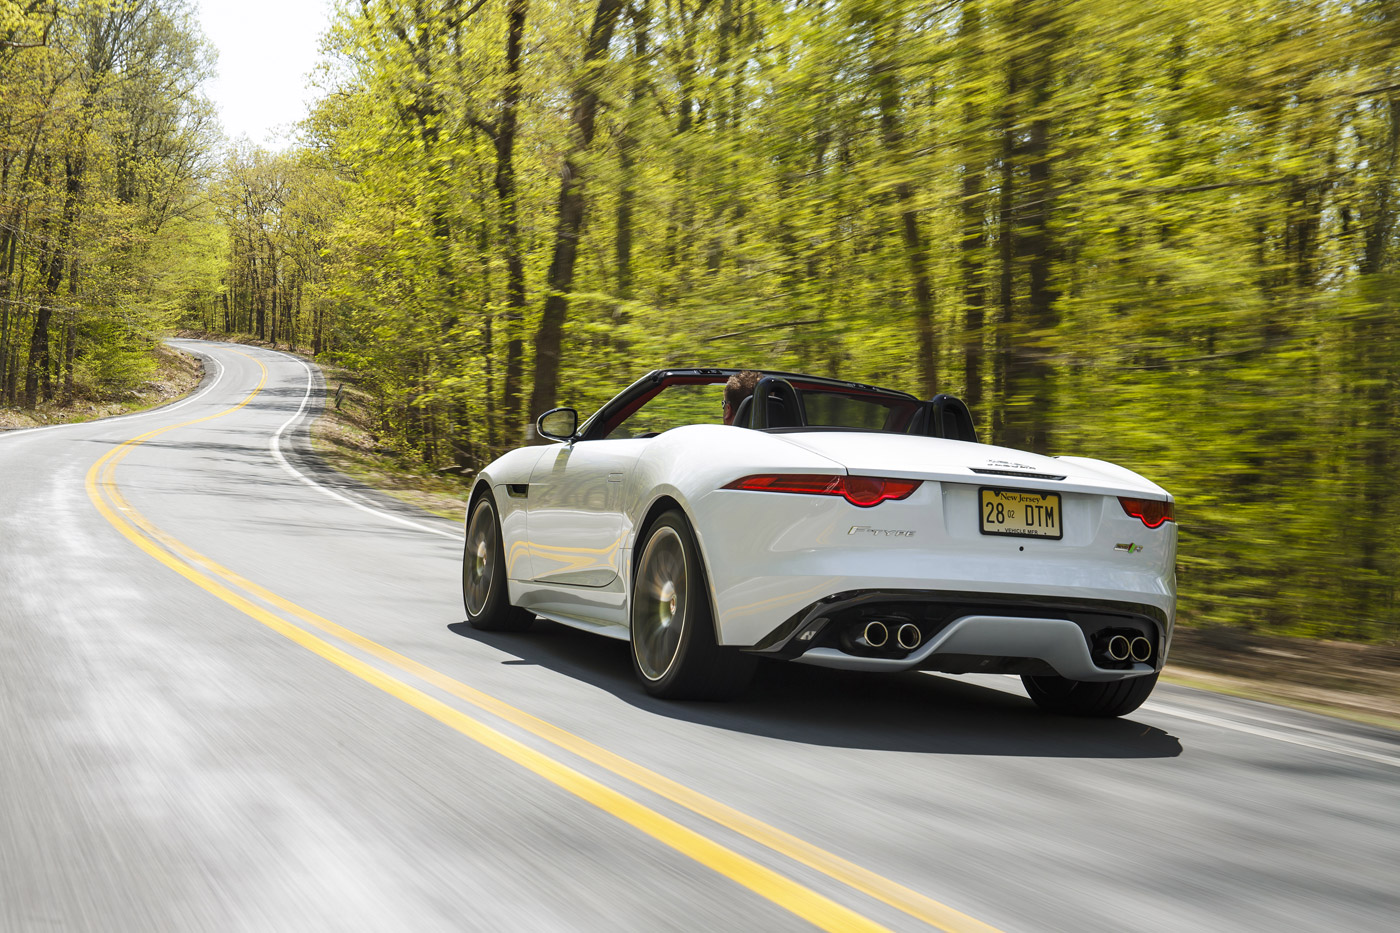 <p>Jaguar F-TYPE AWD on a twisty road in New York State.</p>